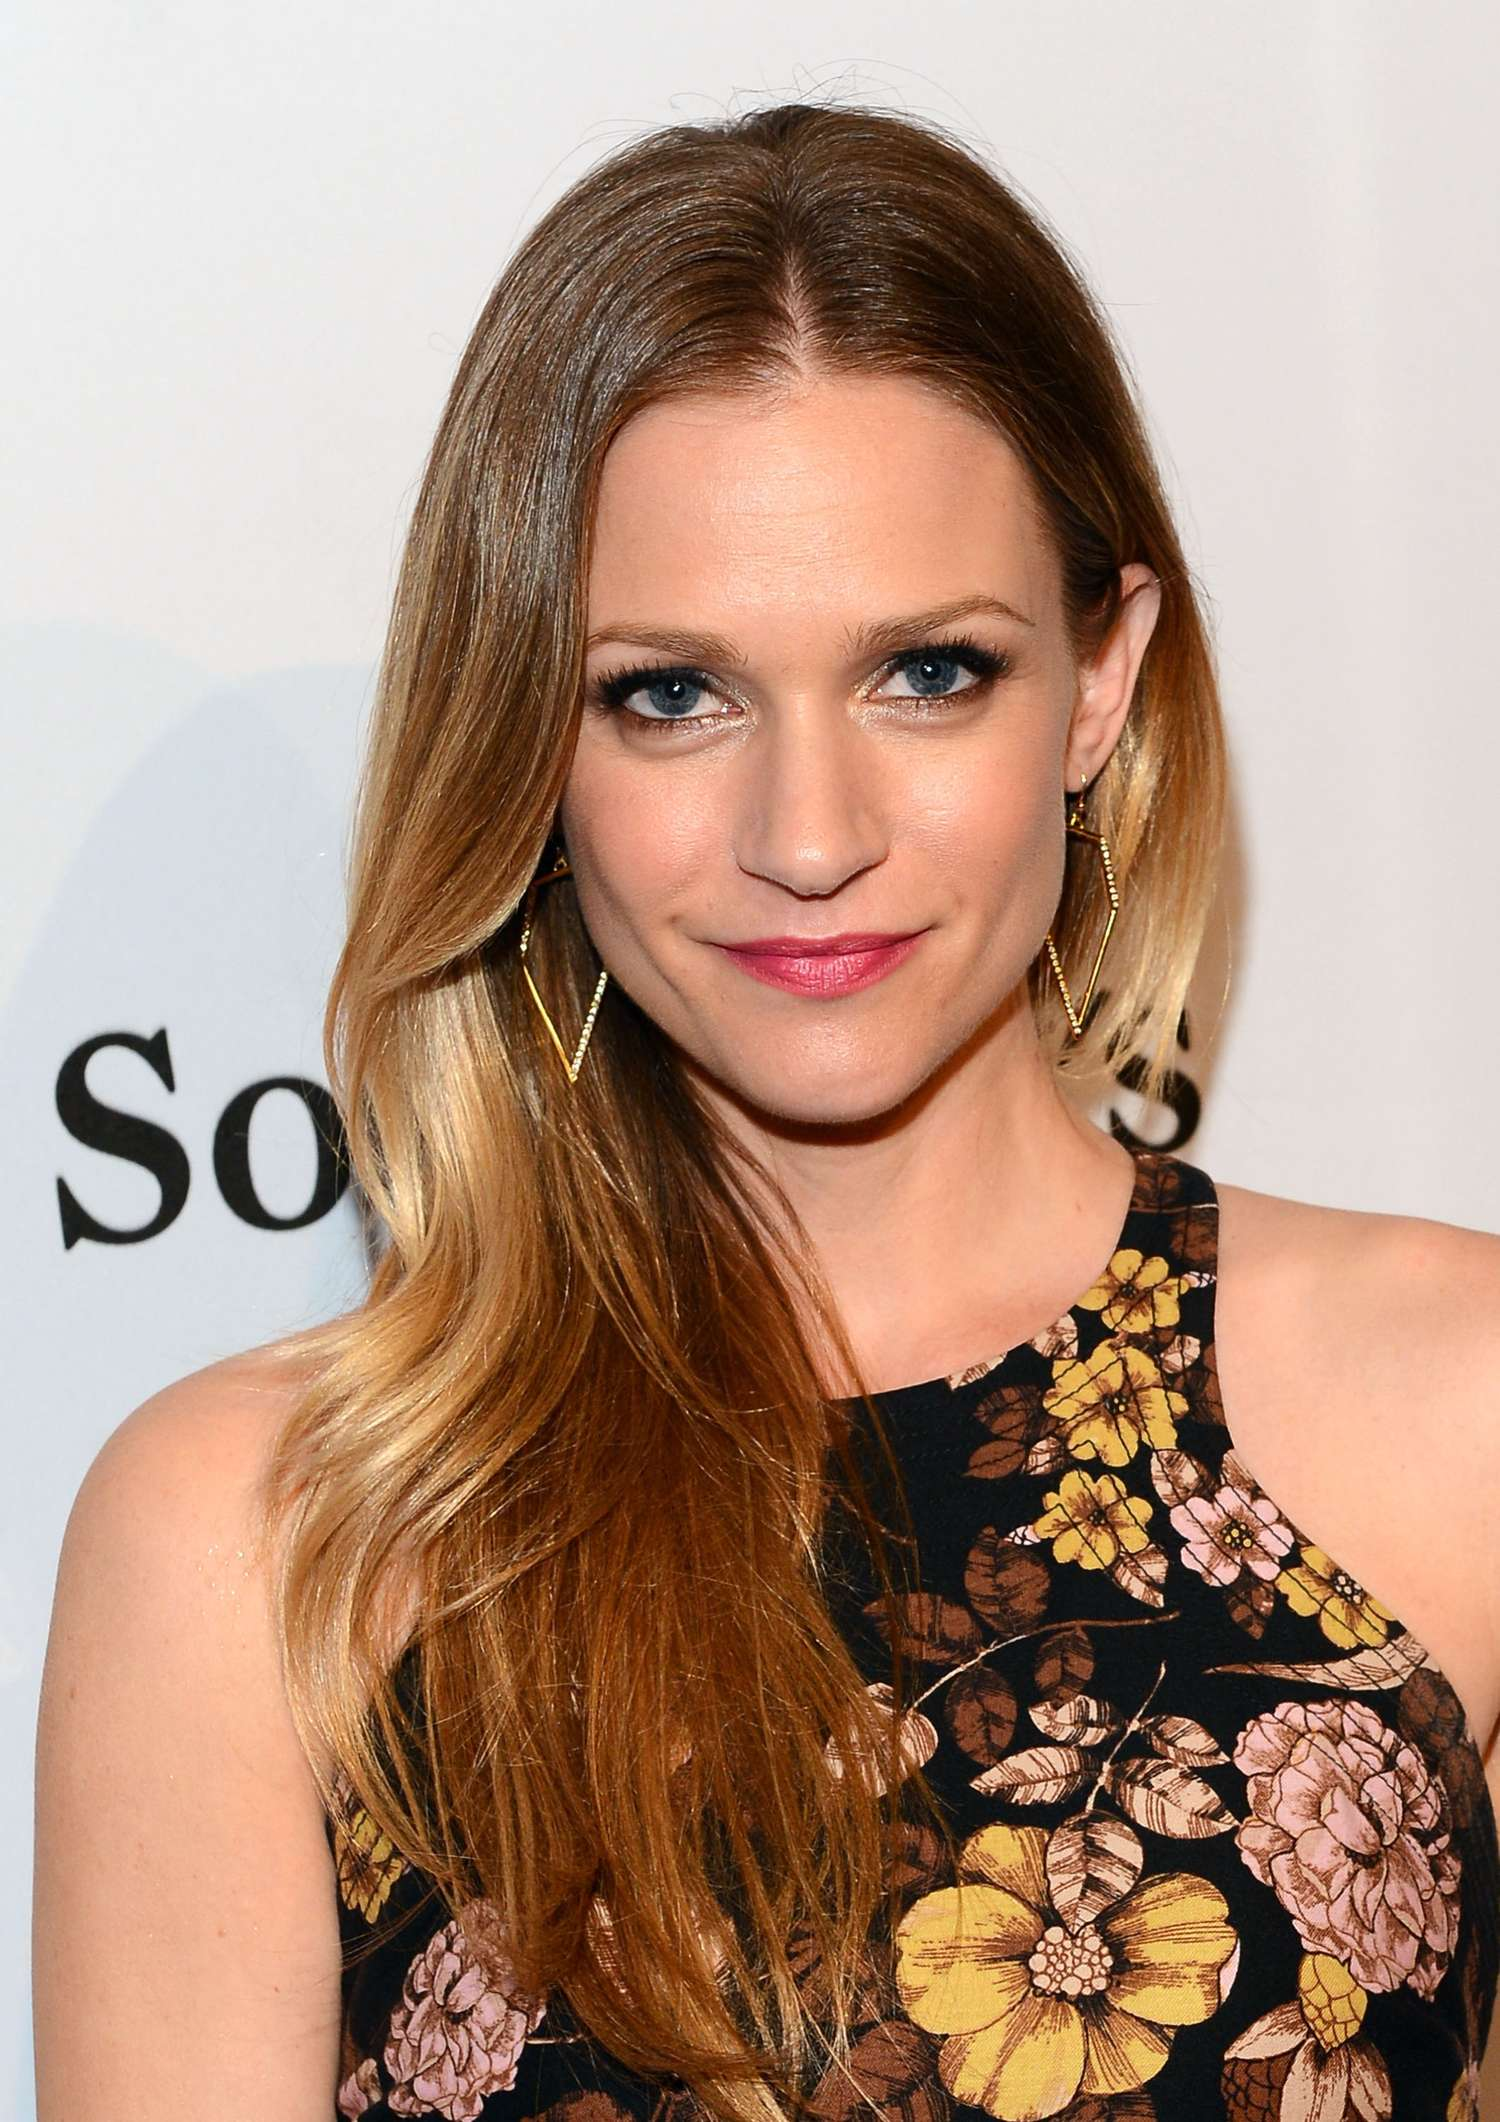 Aj Cook Pieces Of Heaven Charity Art Auction In